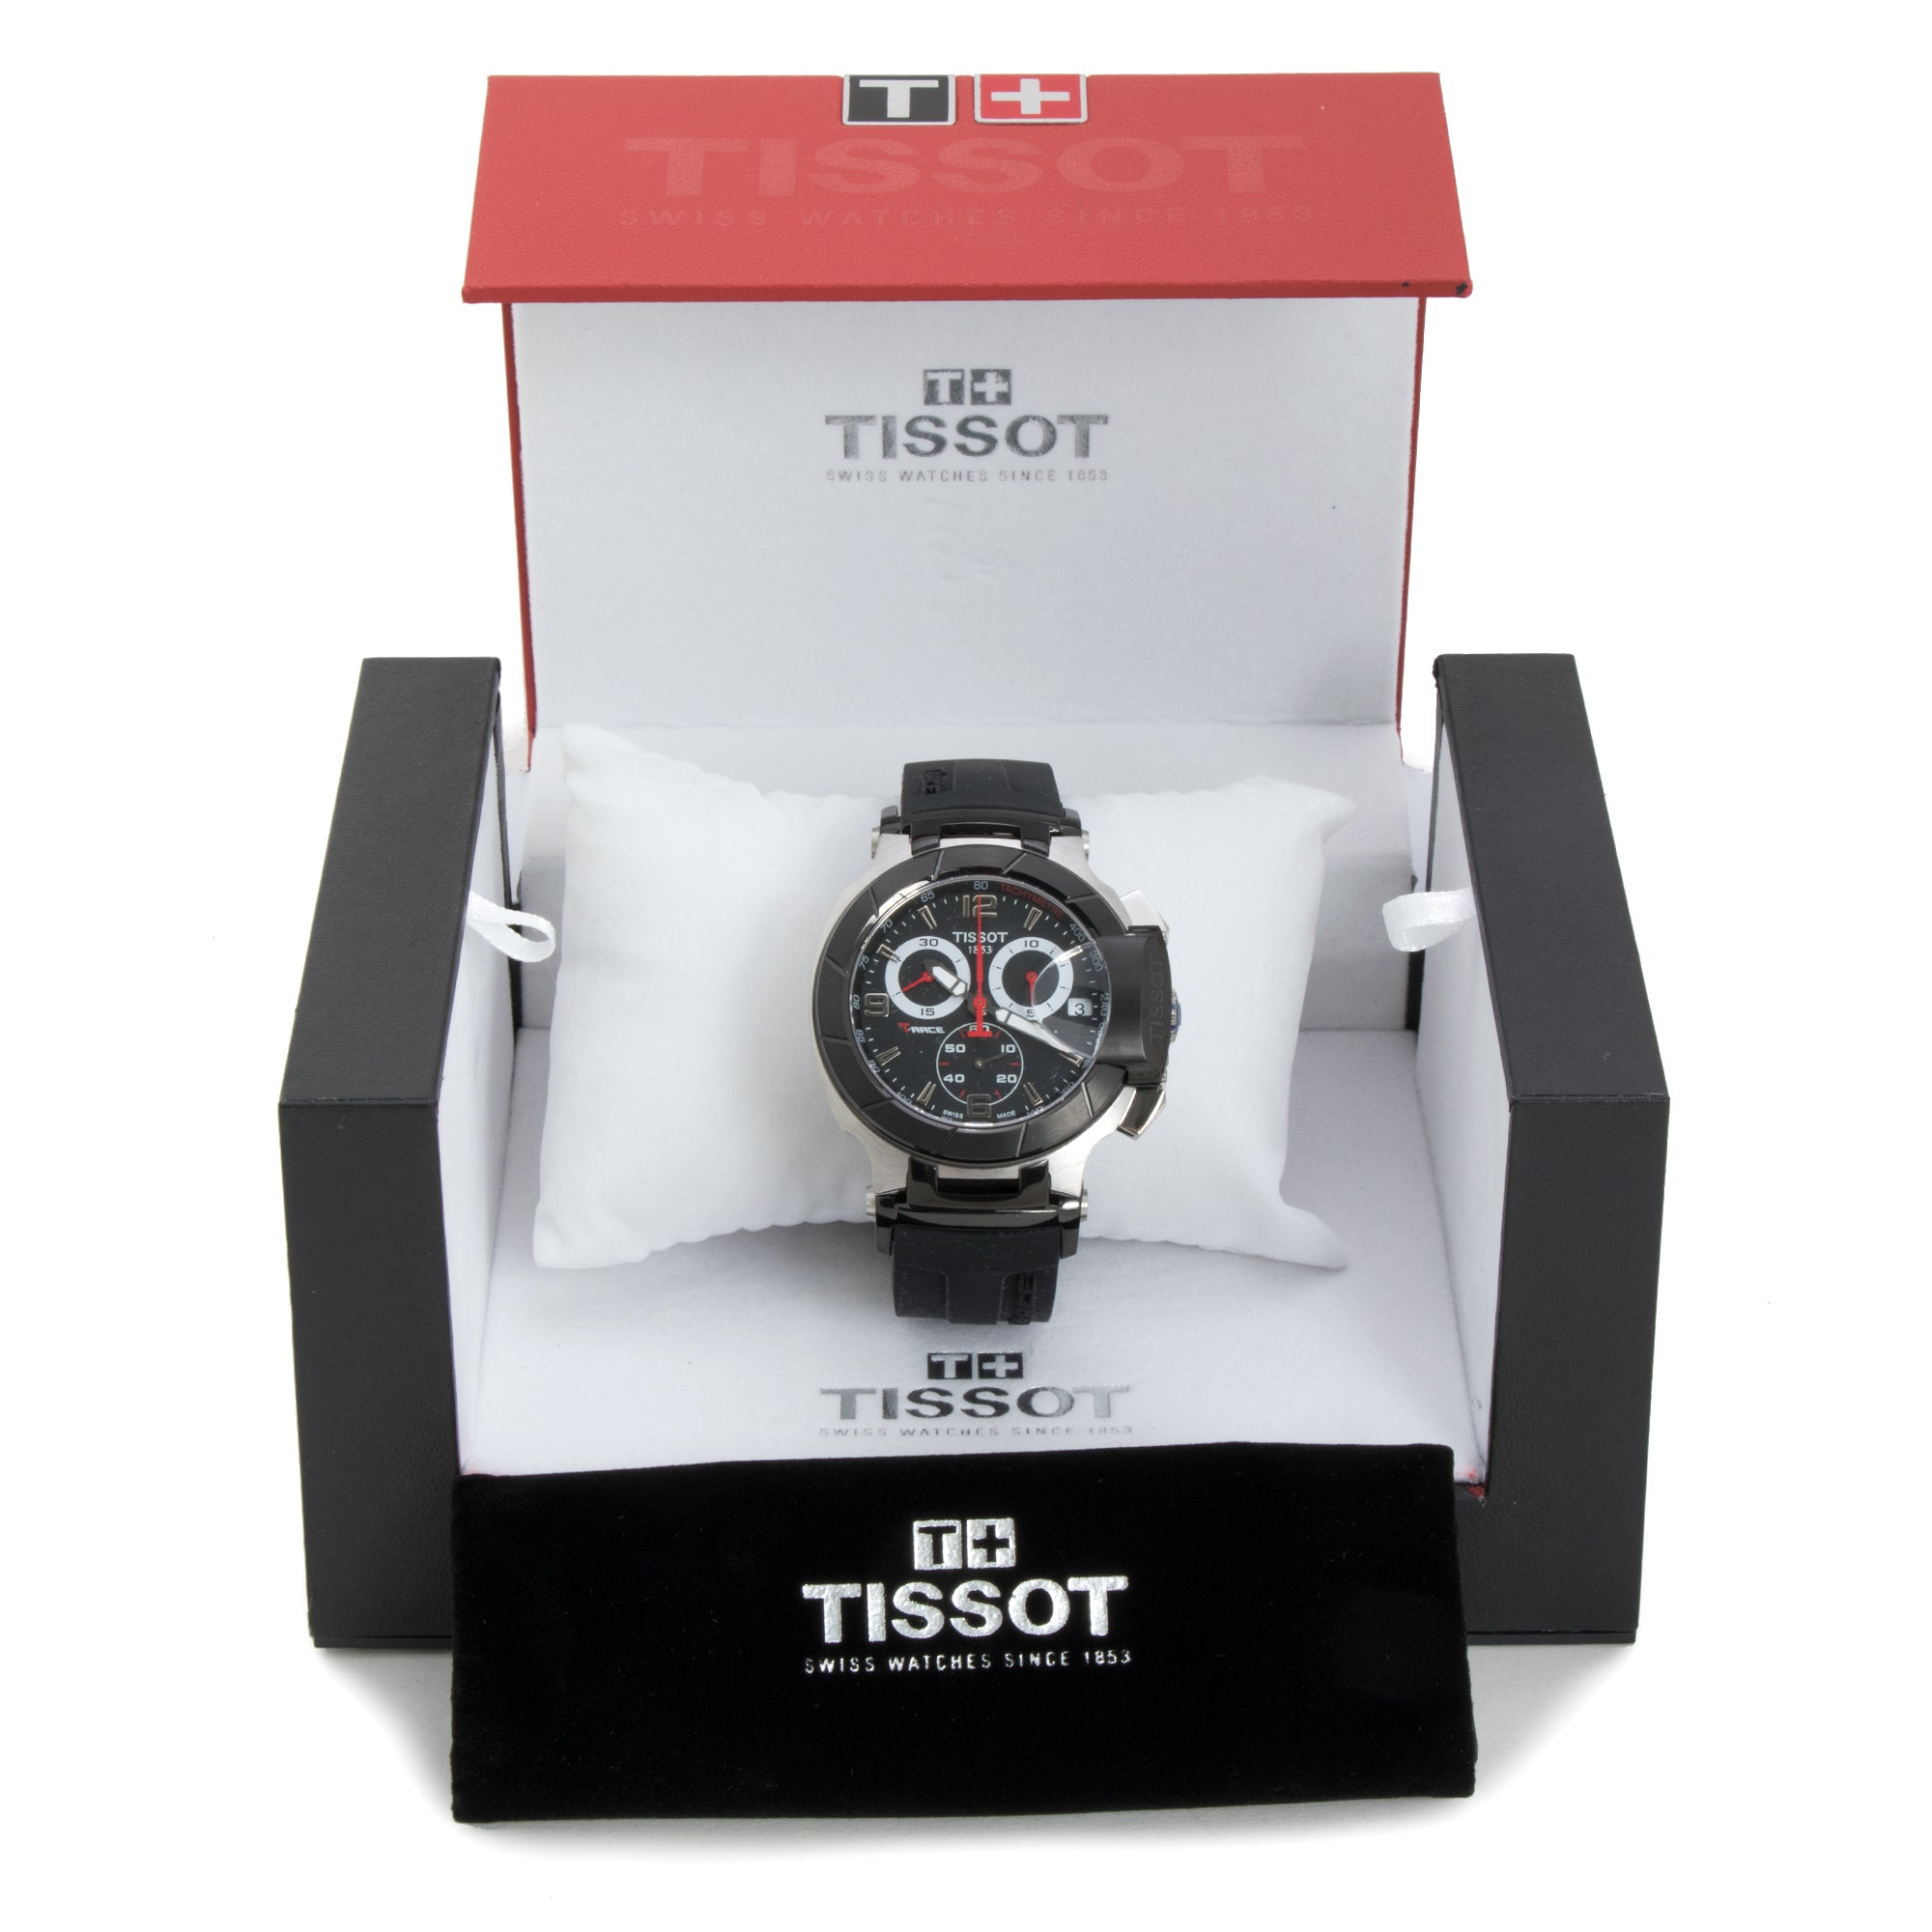 Tissot T-Race Chronograph Black Dial Men's Watch w/ Gold